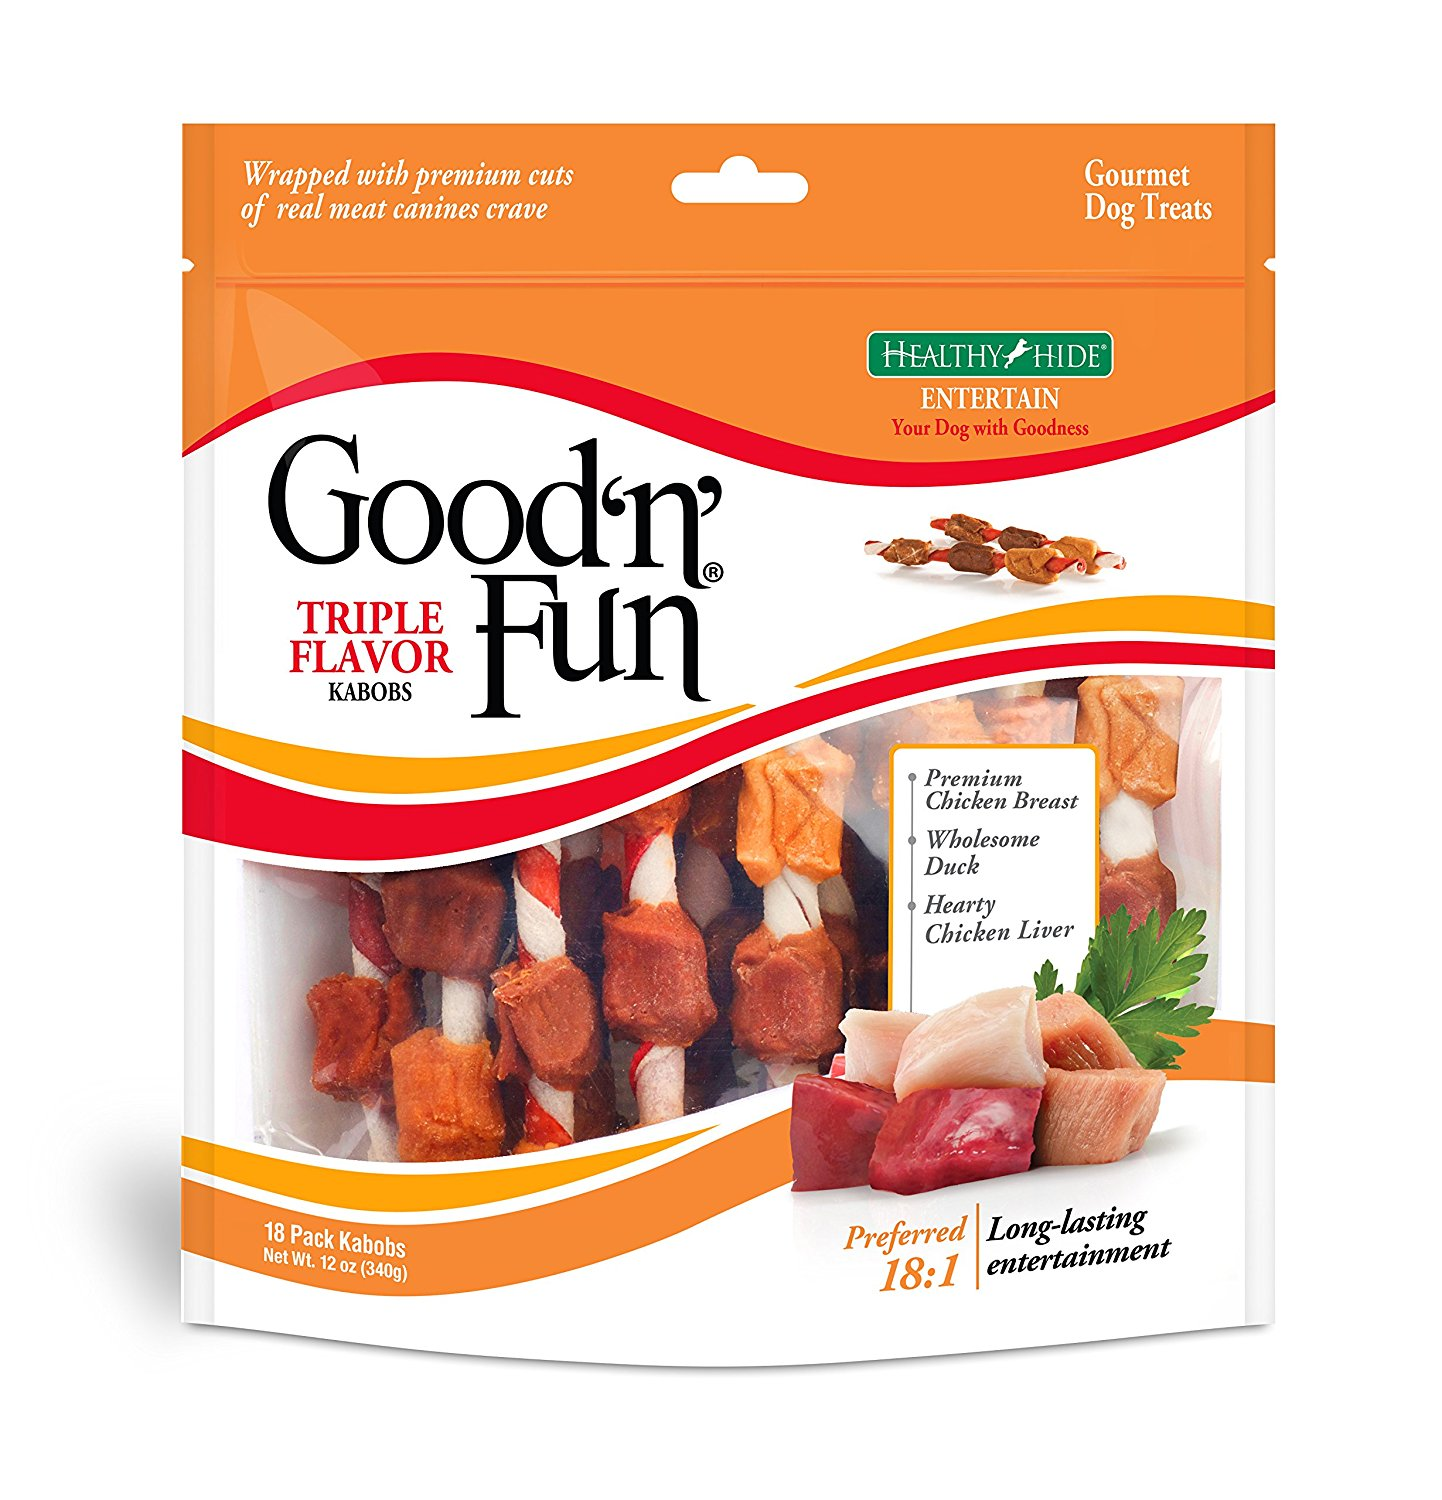 Good'n'Fun Triple Flavored Rawhide Kabobs Dog Treats, 12-Ounce